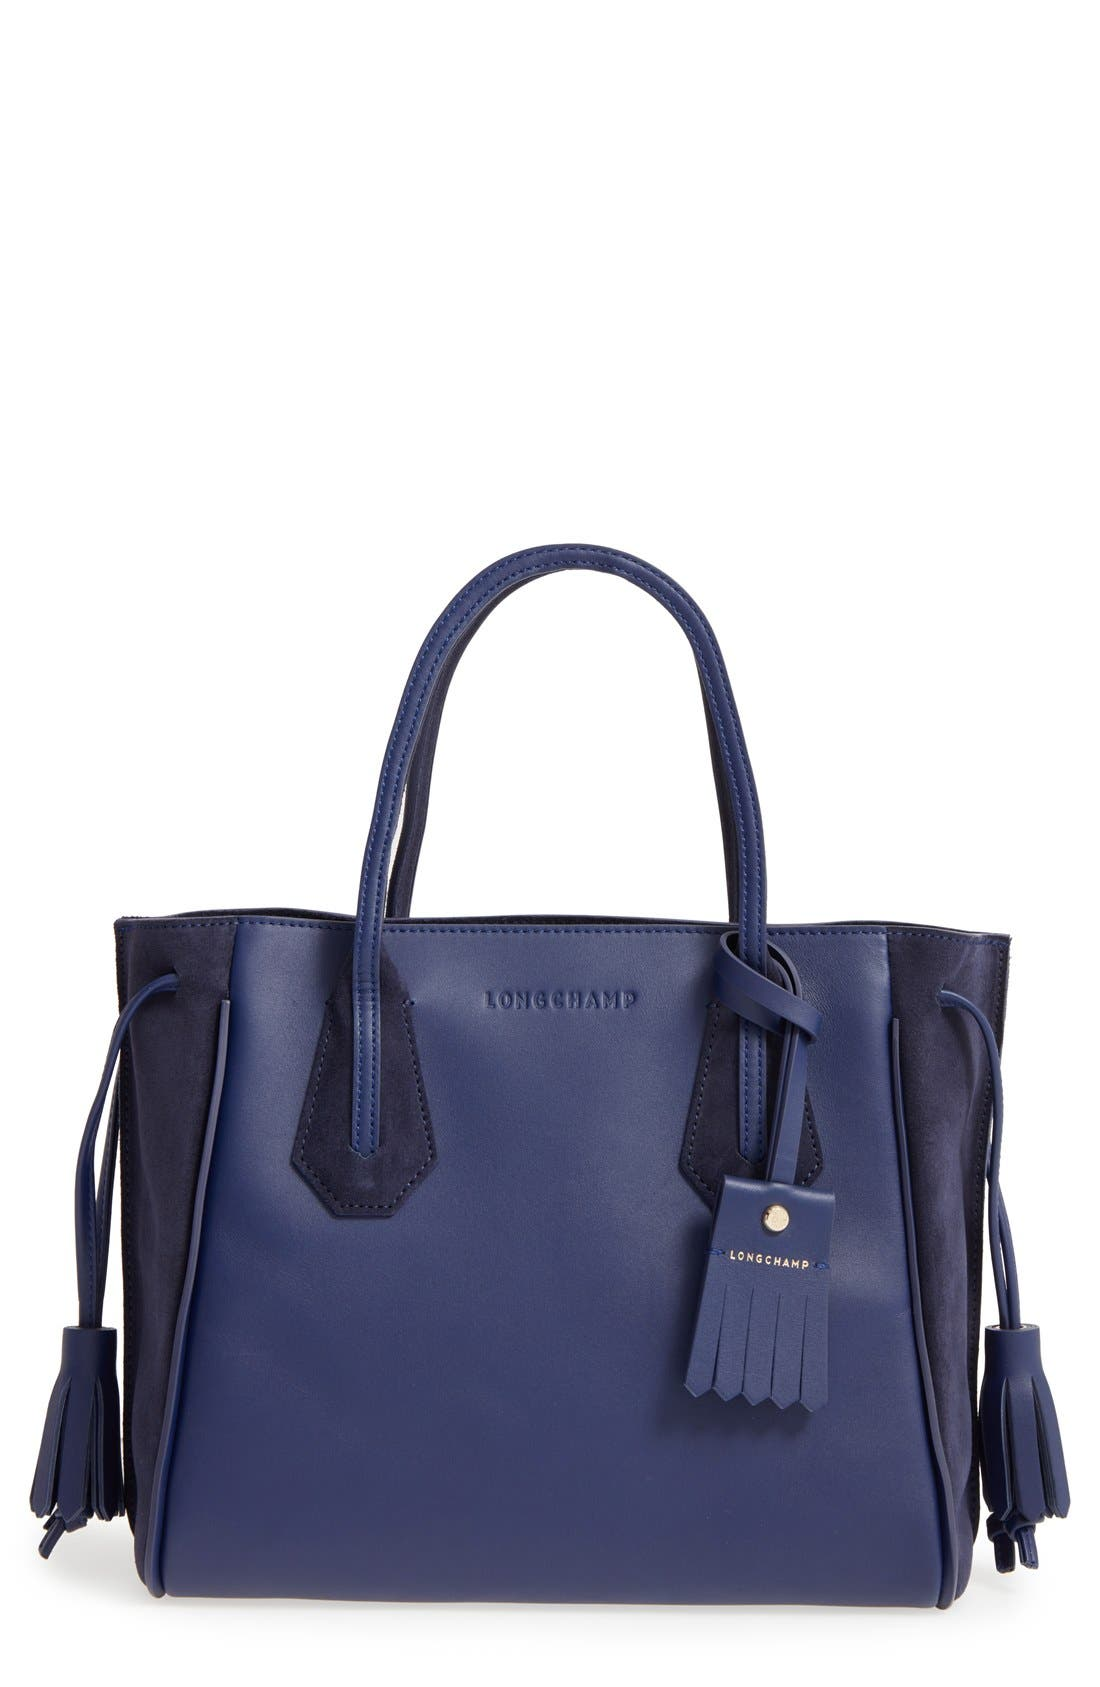 Main Image - Longchamp 'Small Penelope Fantasie' Leather Tote